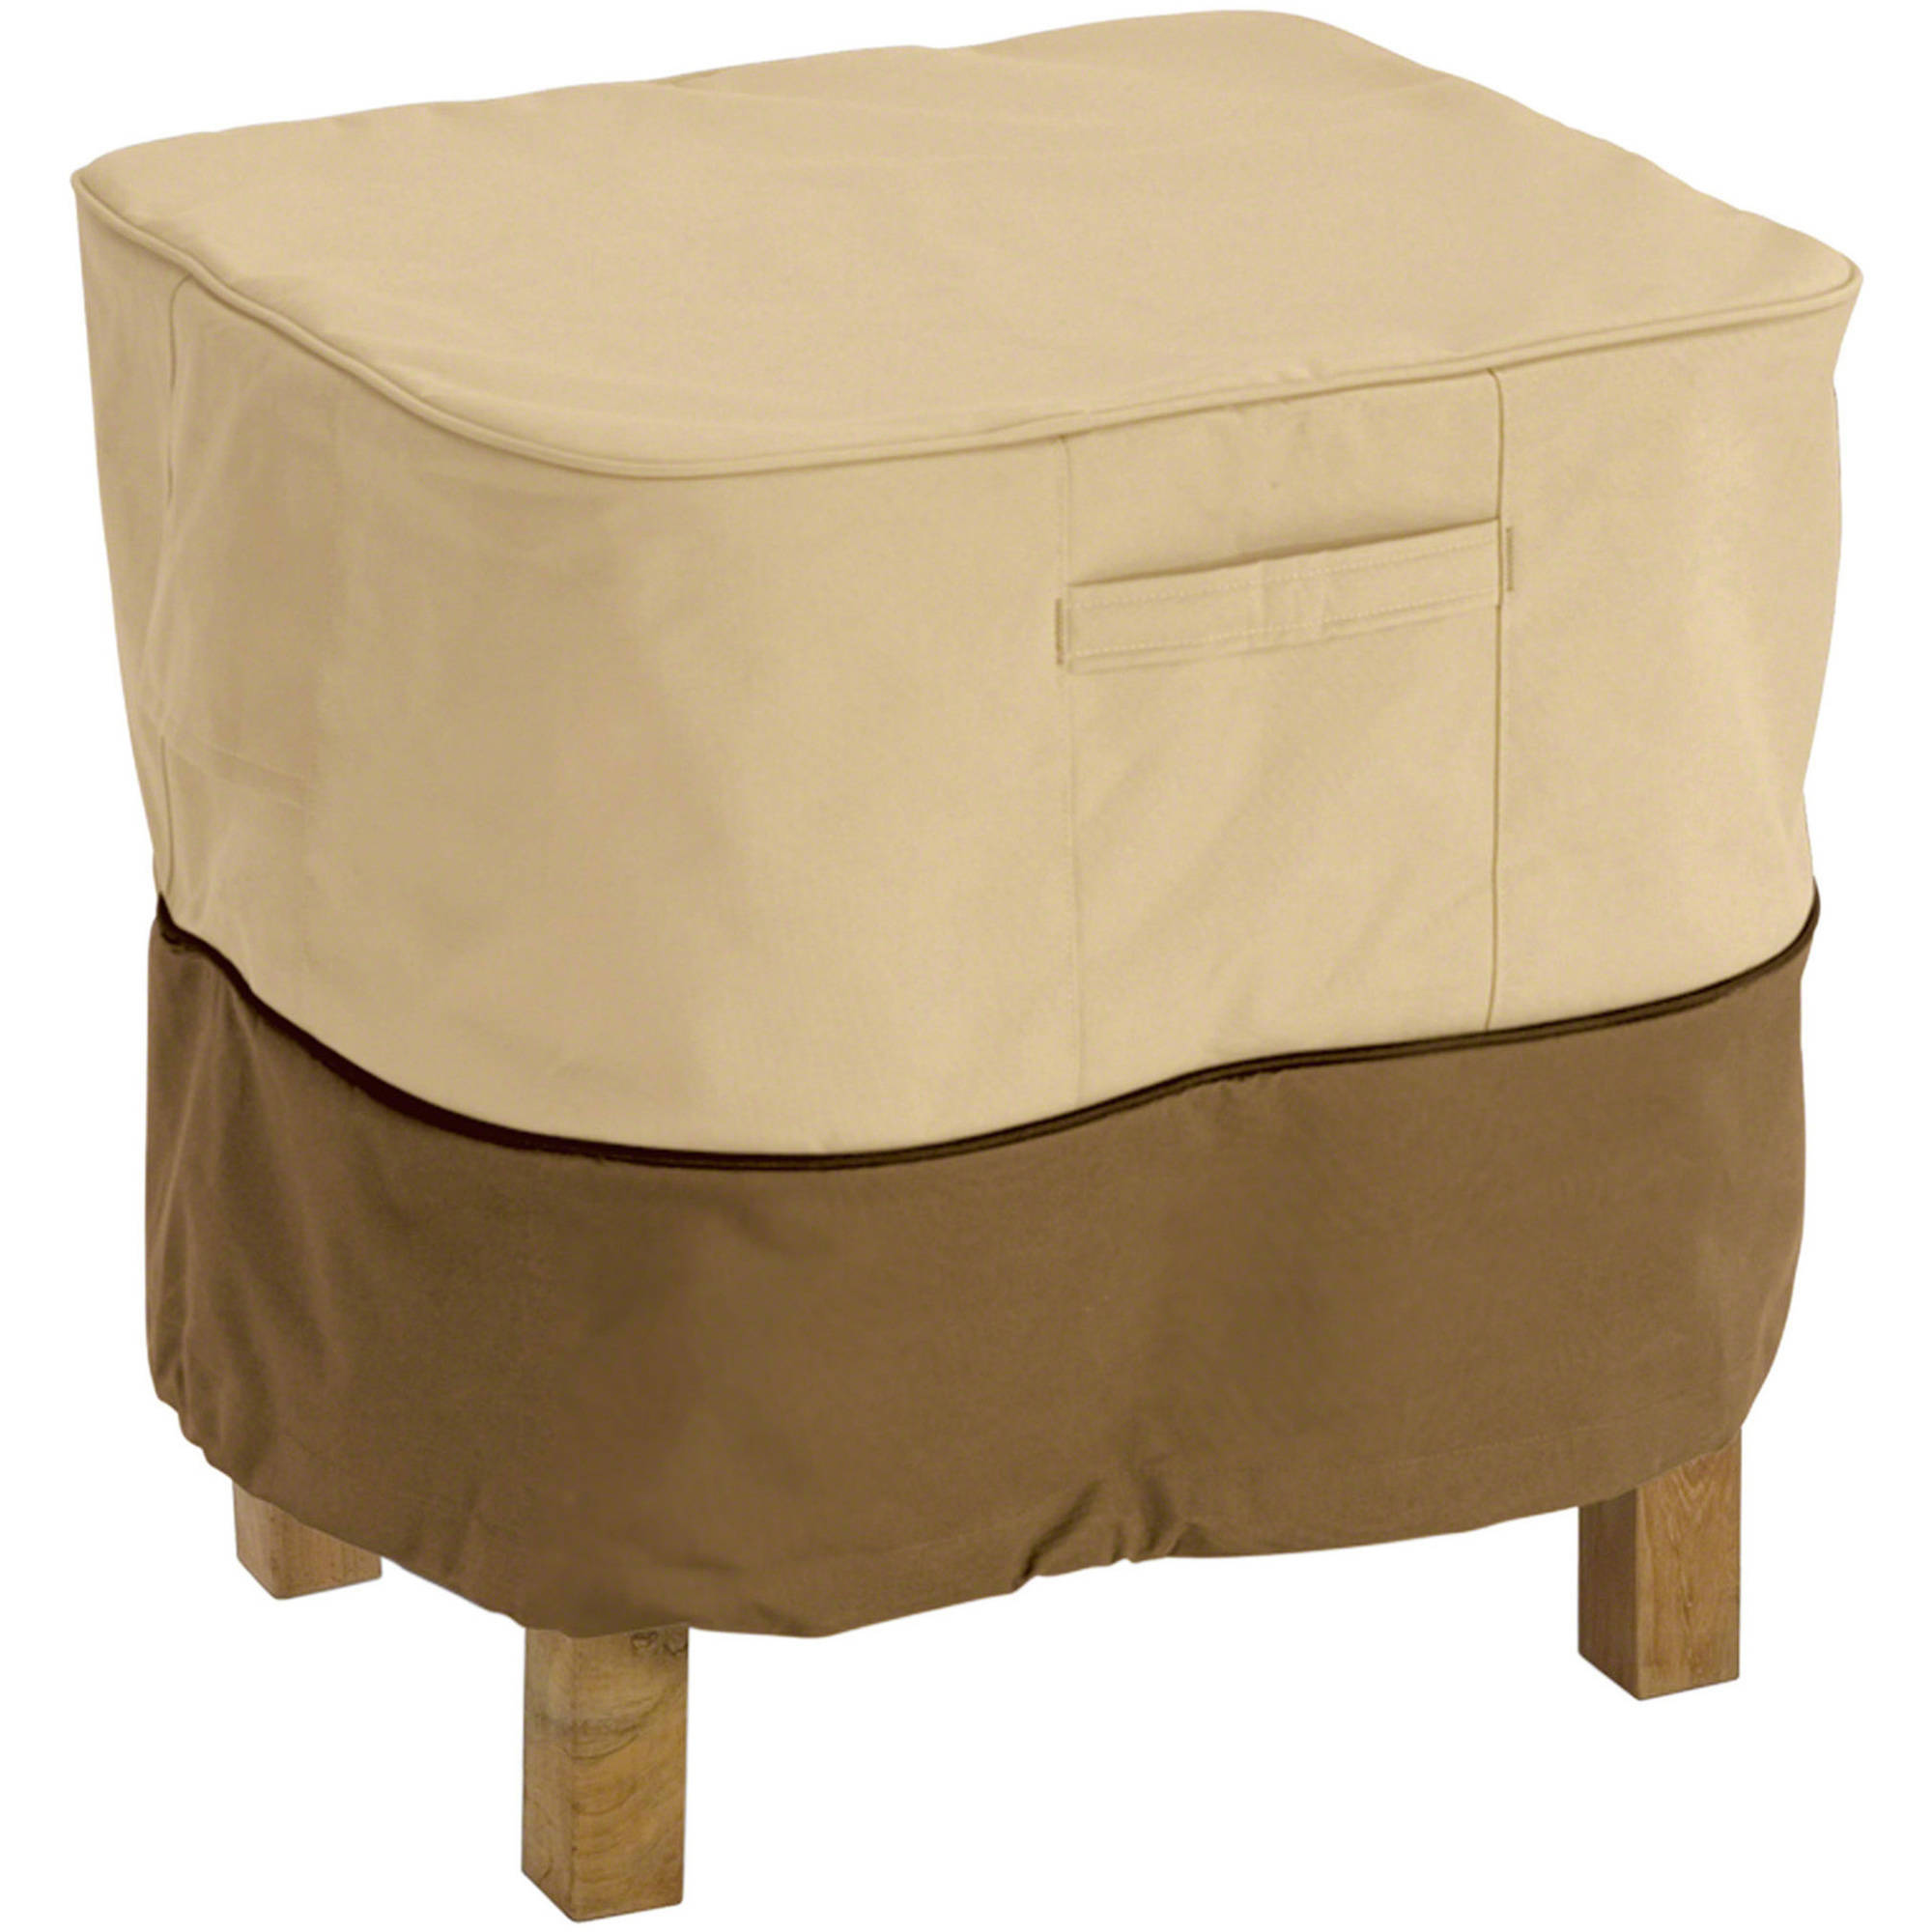 "Classic Accessories Veranda Square Patio Ottoman and Table Cover, fits up to 21""L x 21""W"